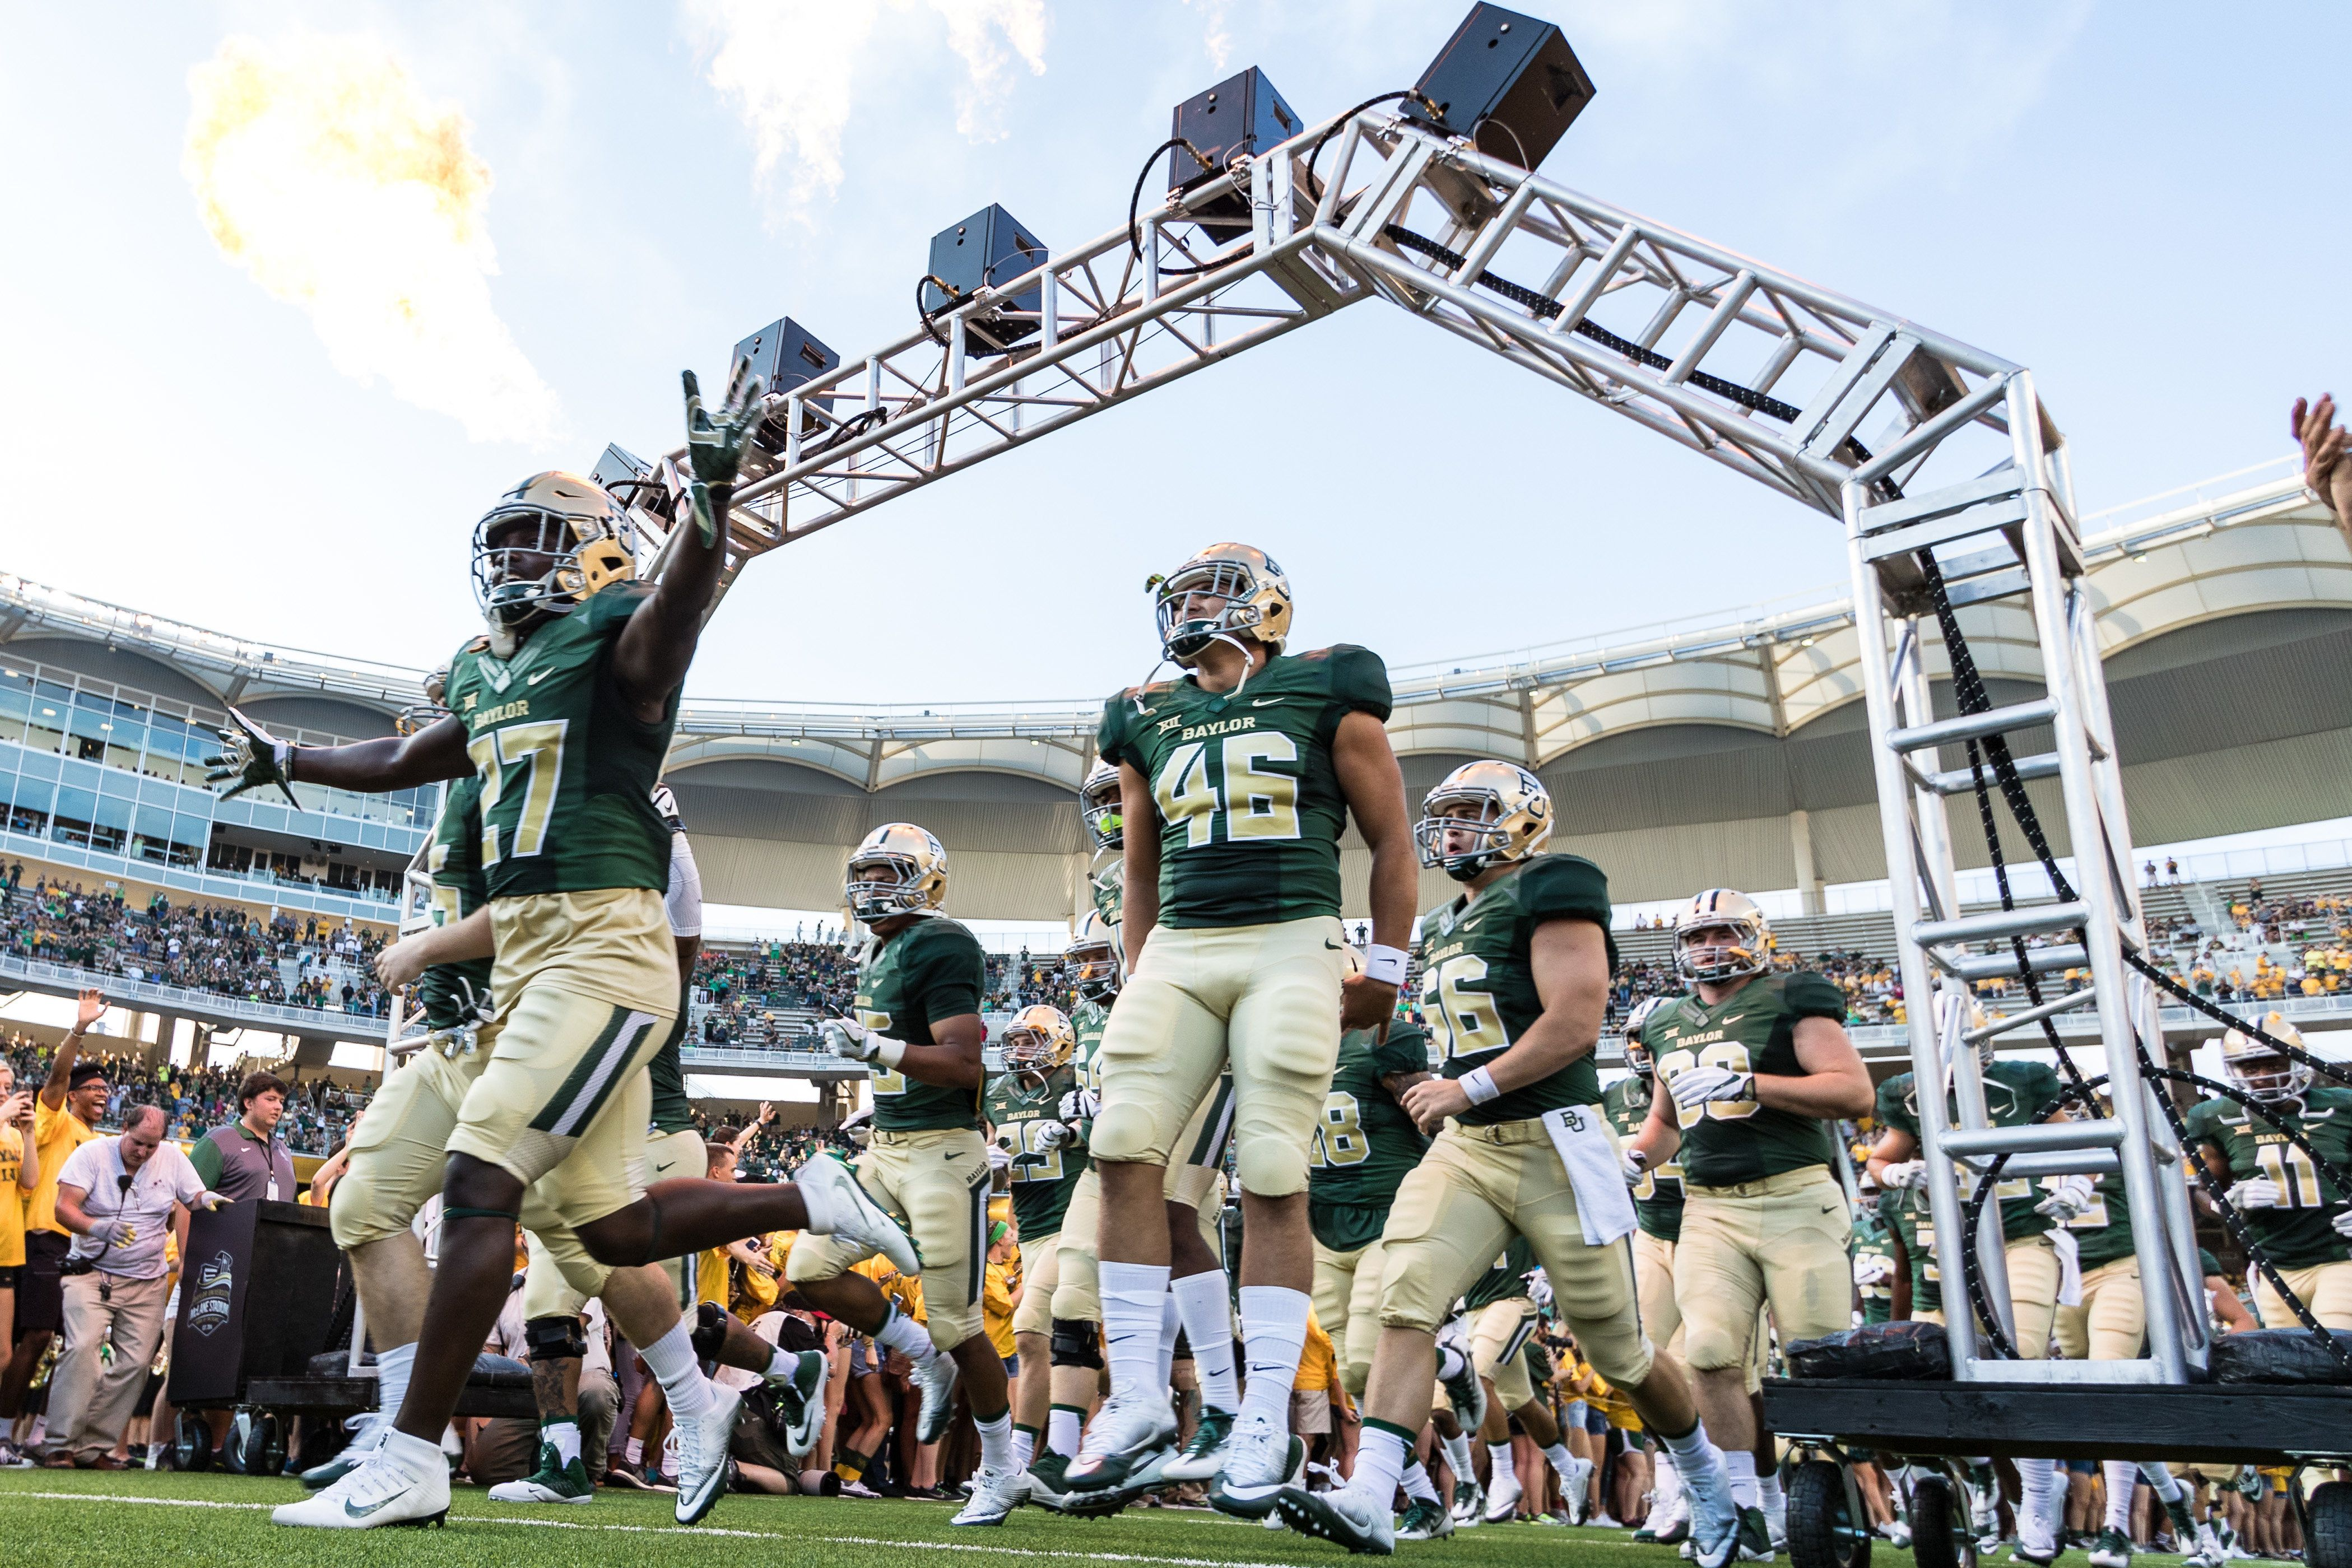 02 SEP 2016: The Baylor Bears players run onto the field before the game between the Baylor Bears and Northwestern State Demons at McLane Stadium in Waco, TX. Baylor beat Northwestern State 55-7. (Photo by Matthew Pearce/Icon Sportswire via Getty Images)